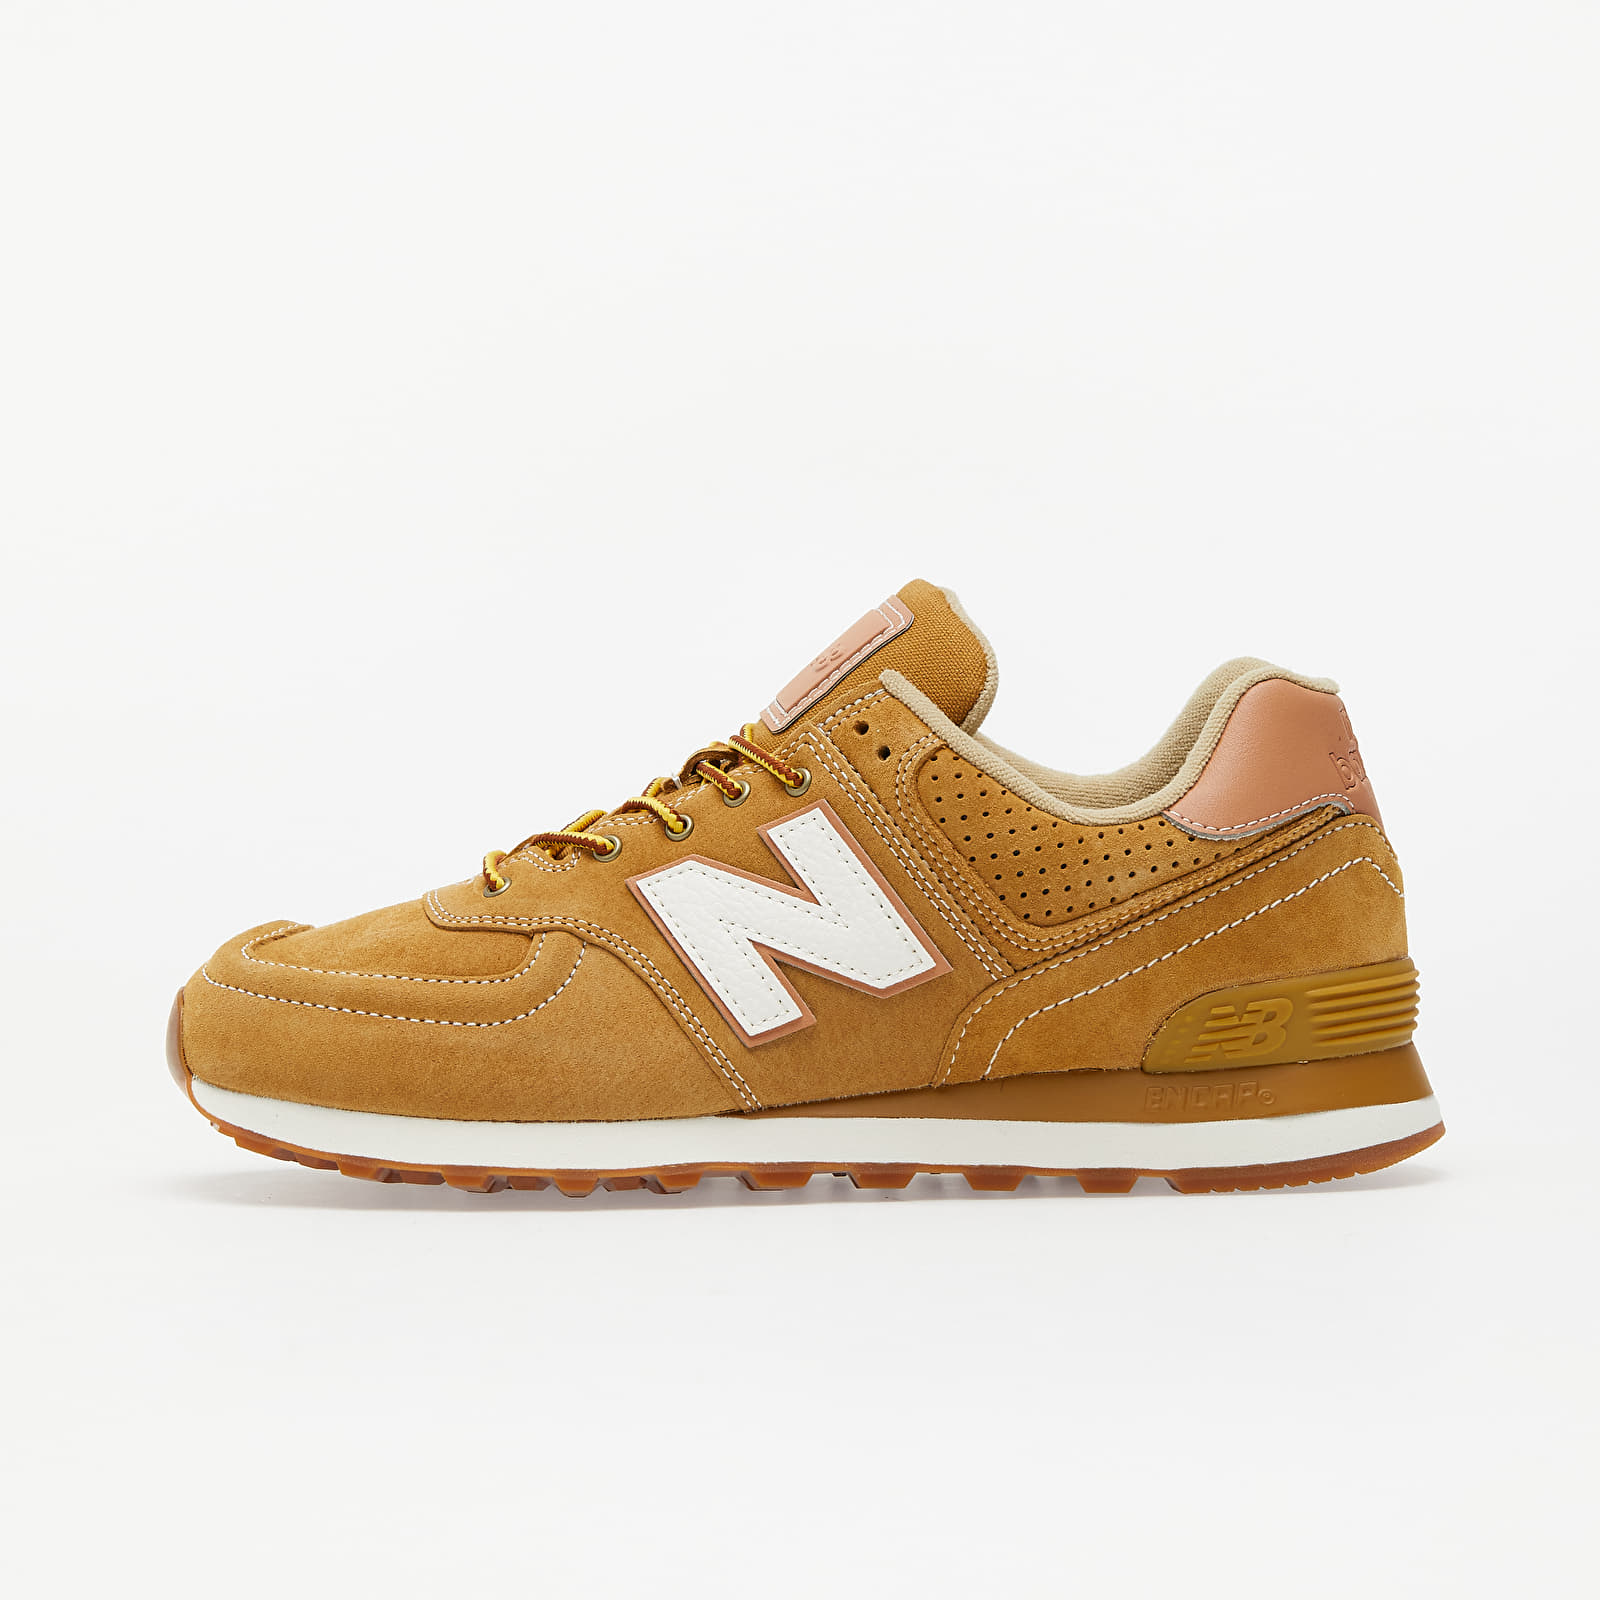 New Balance 574 Brown/ White ML574XAA